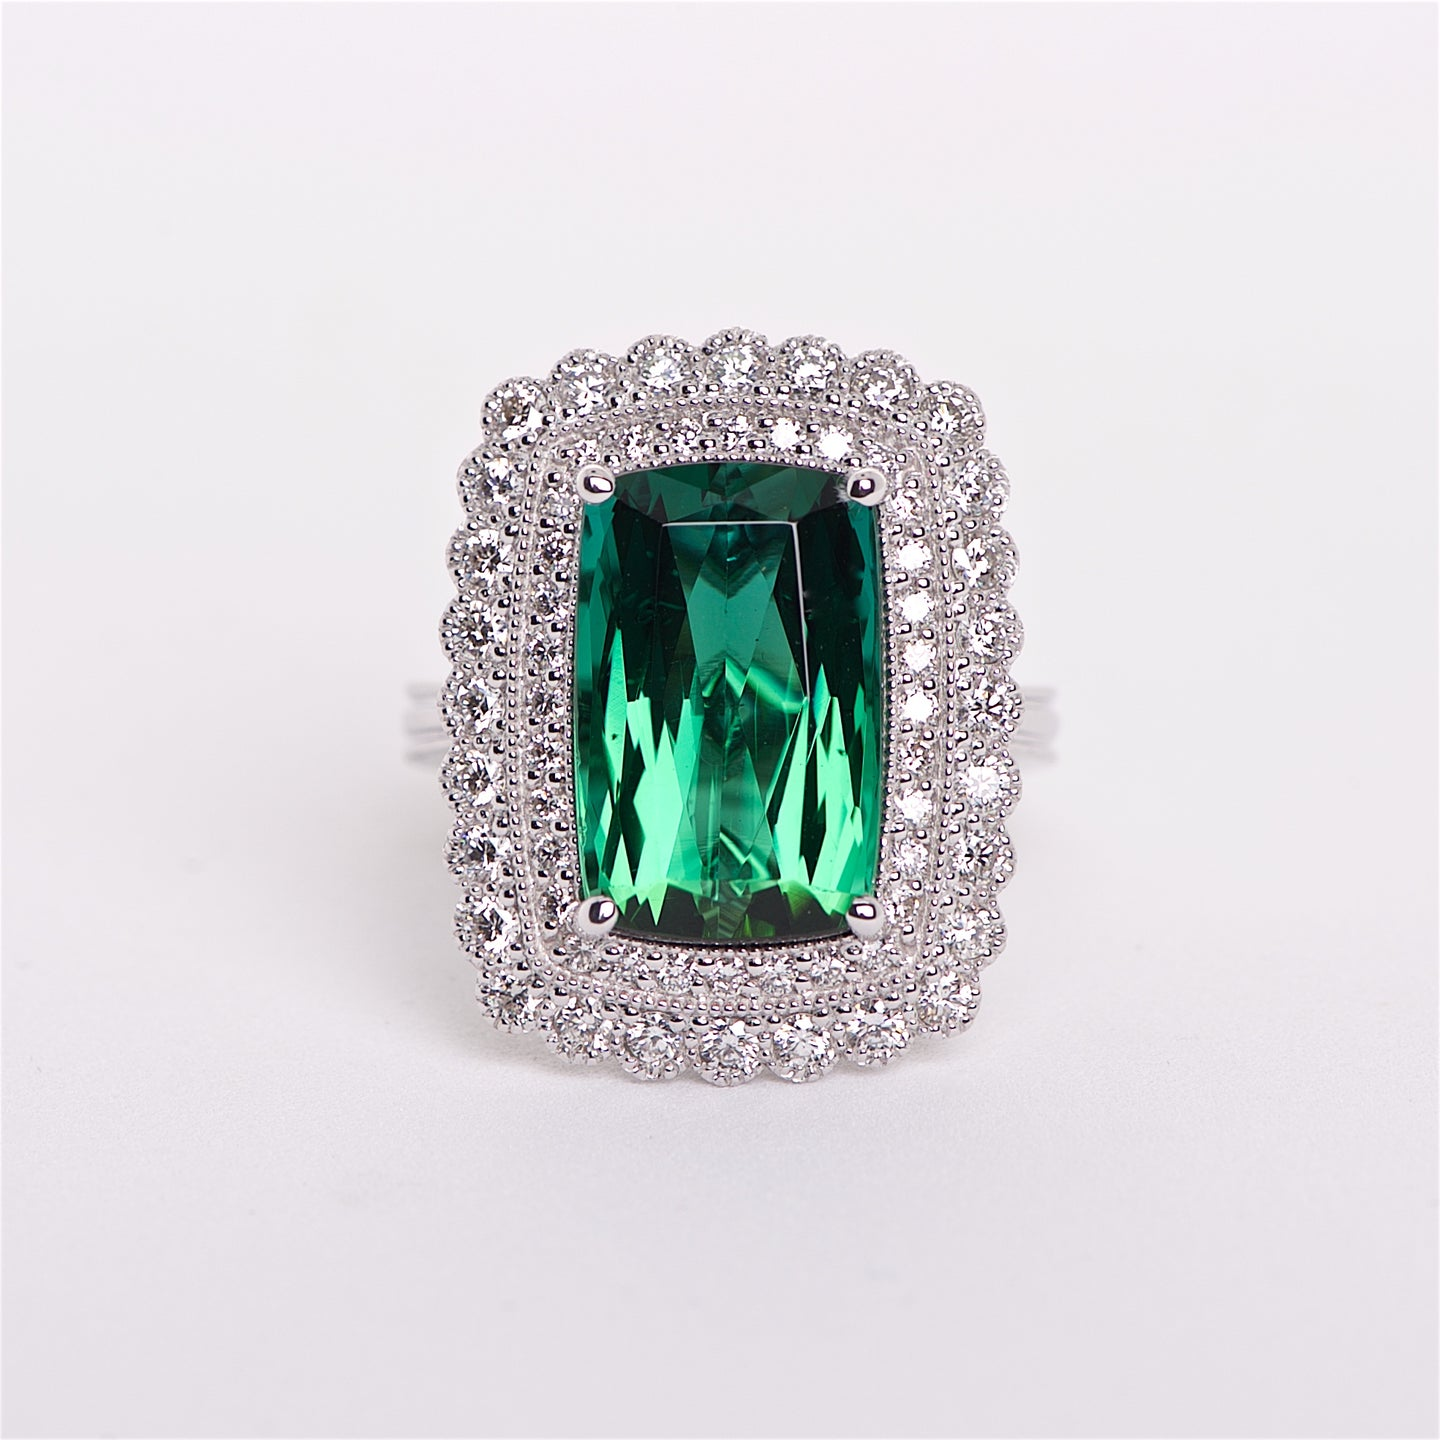 The Lotus - 18K AAA Green Tourmaline and Diamond Ring